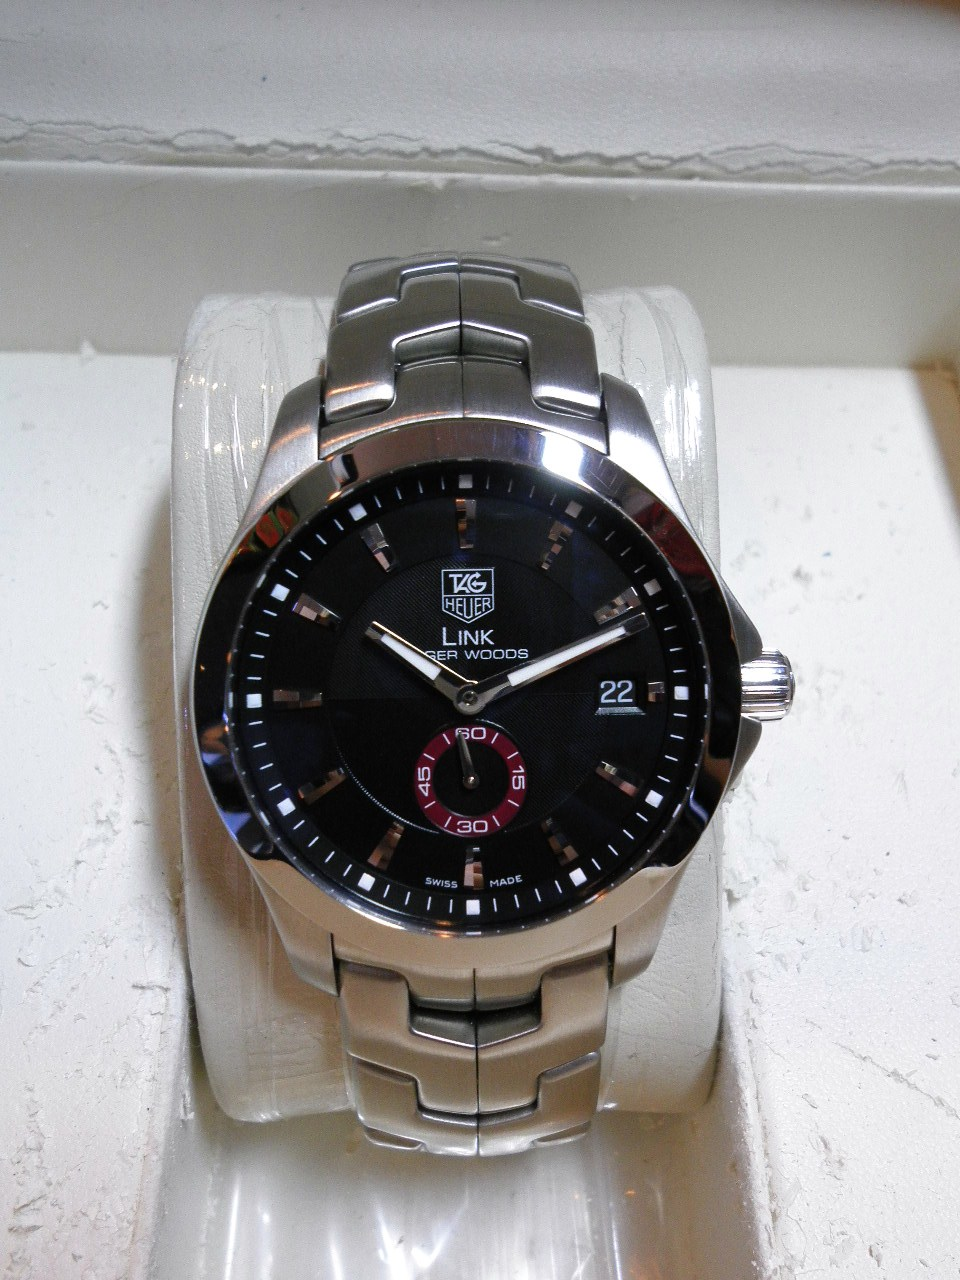 Tag heuer link tiger woods limited edition watch.